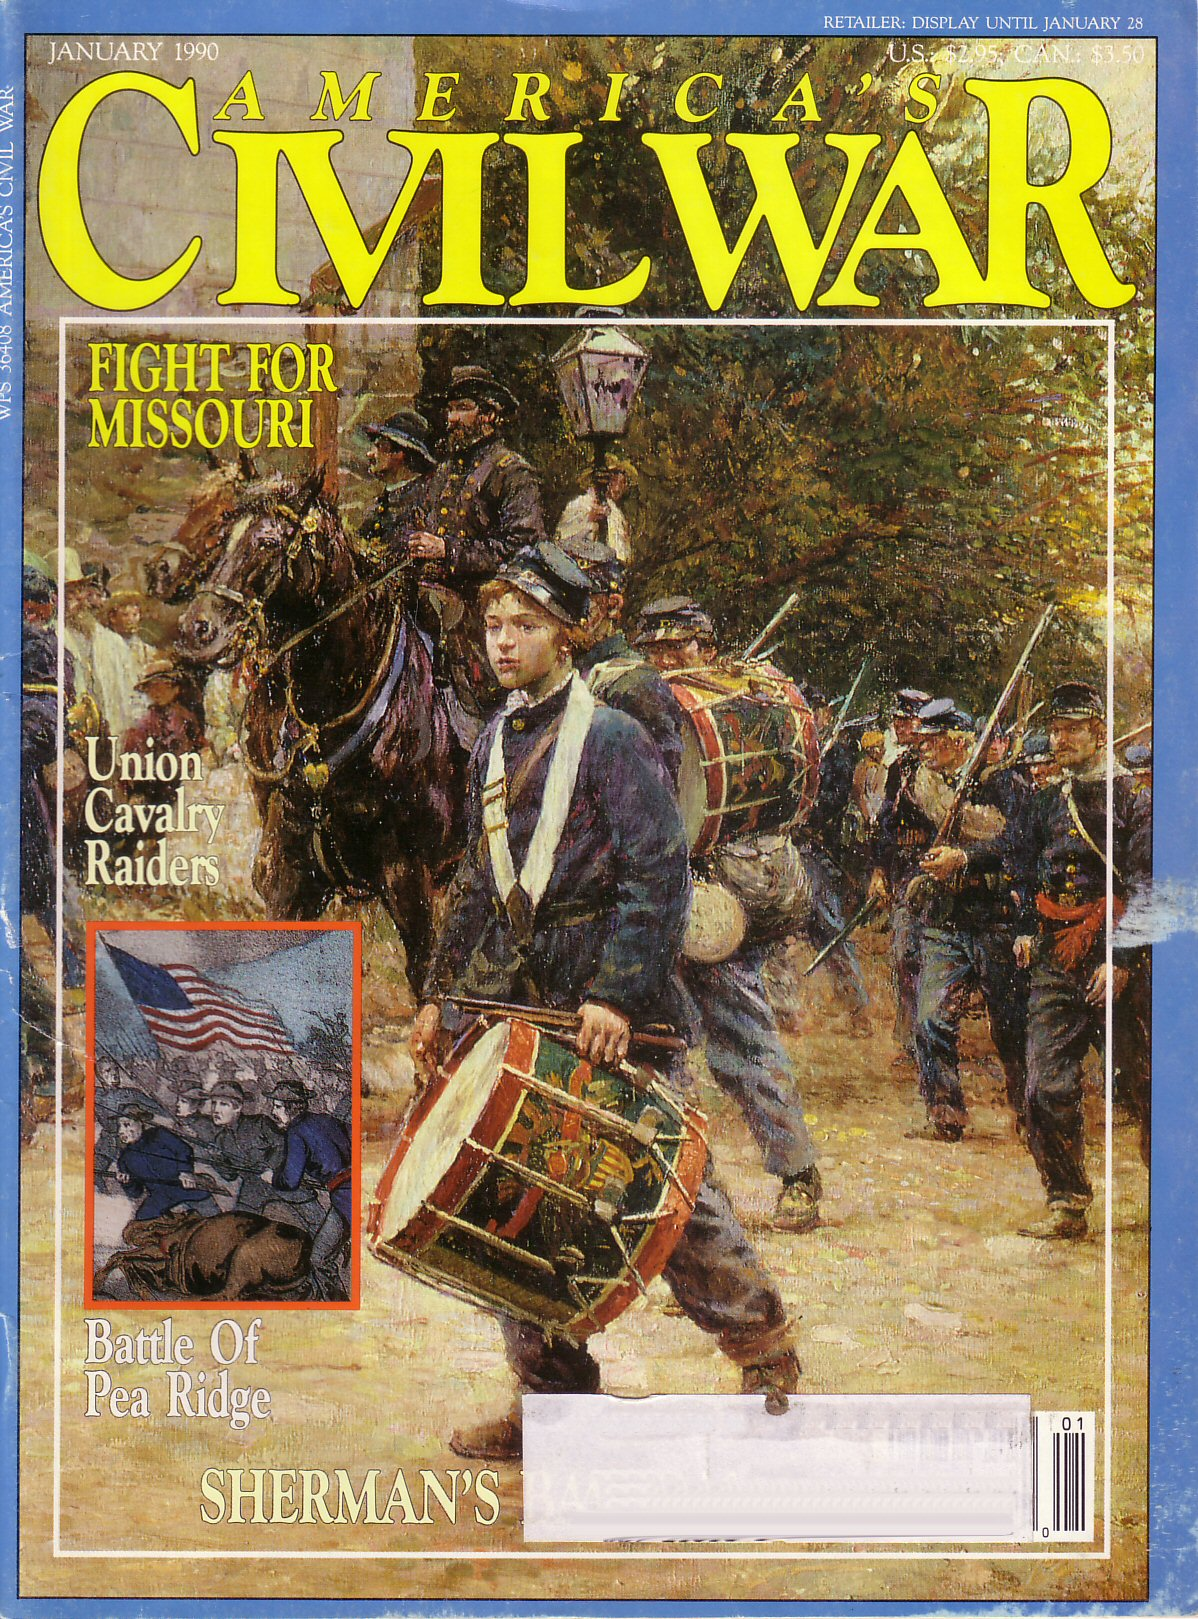 Americas Civil War, Volume 2, Number 5 (January 1990)